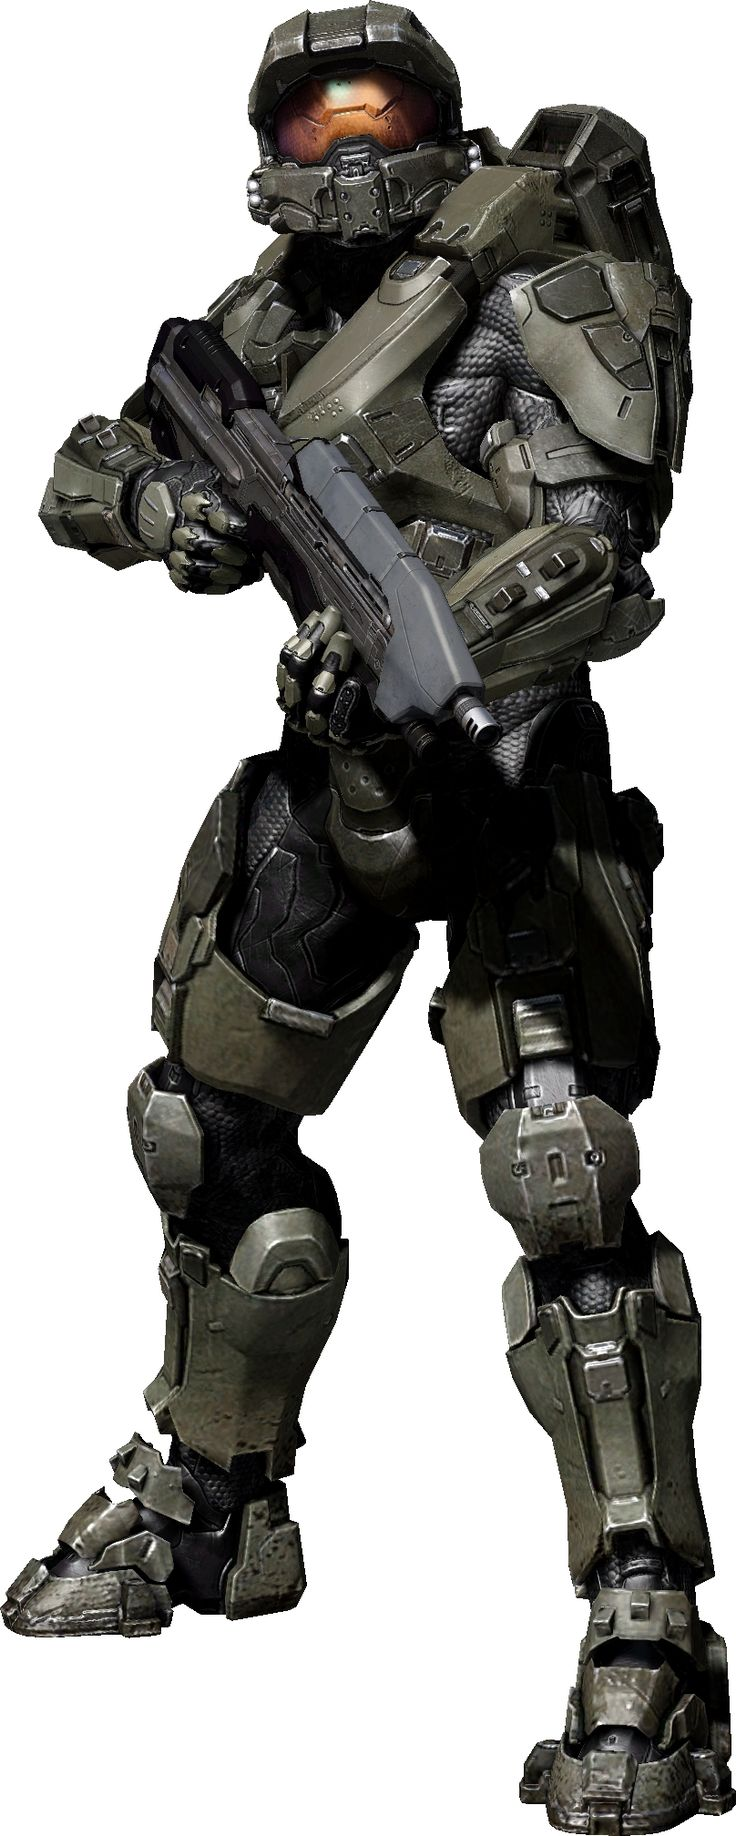 Master Chief's suit in Halo 4. I think I like this one the best